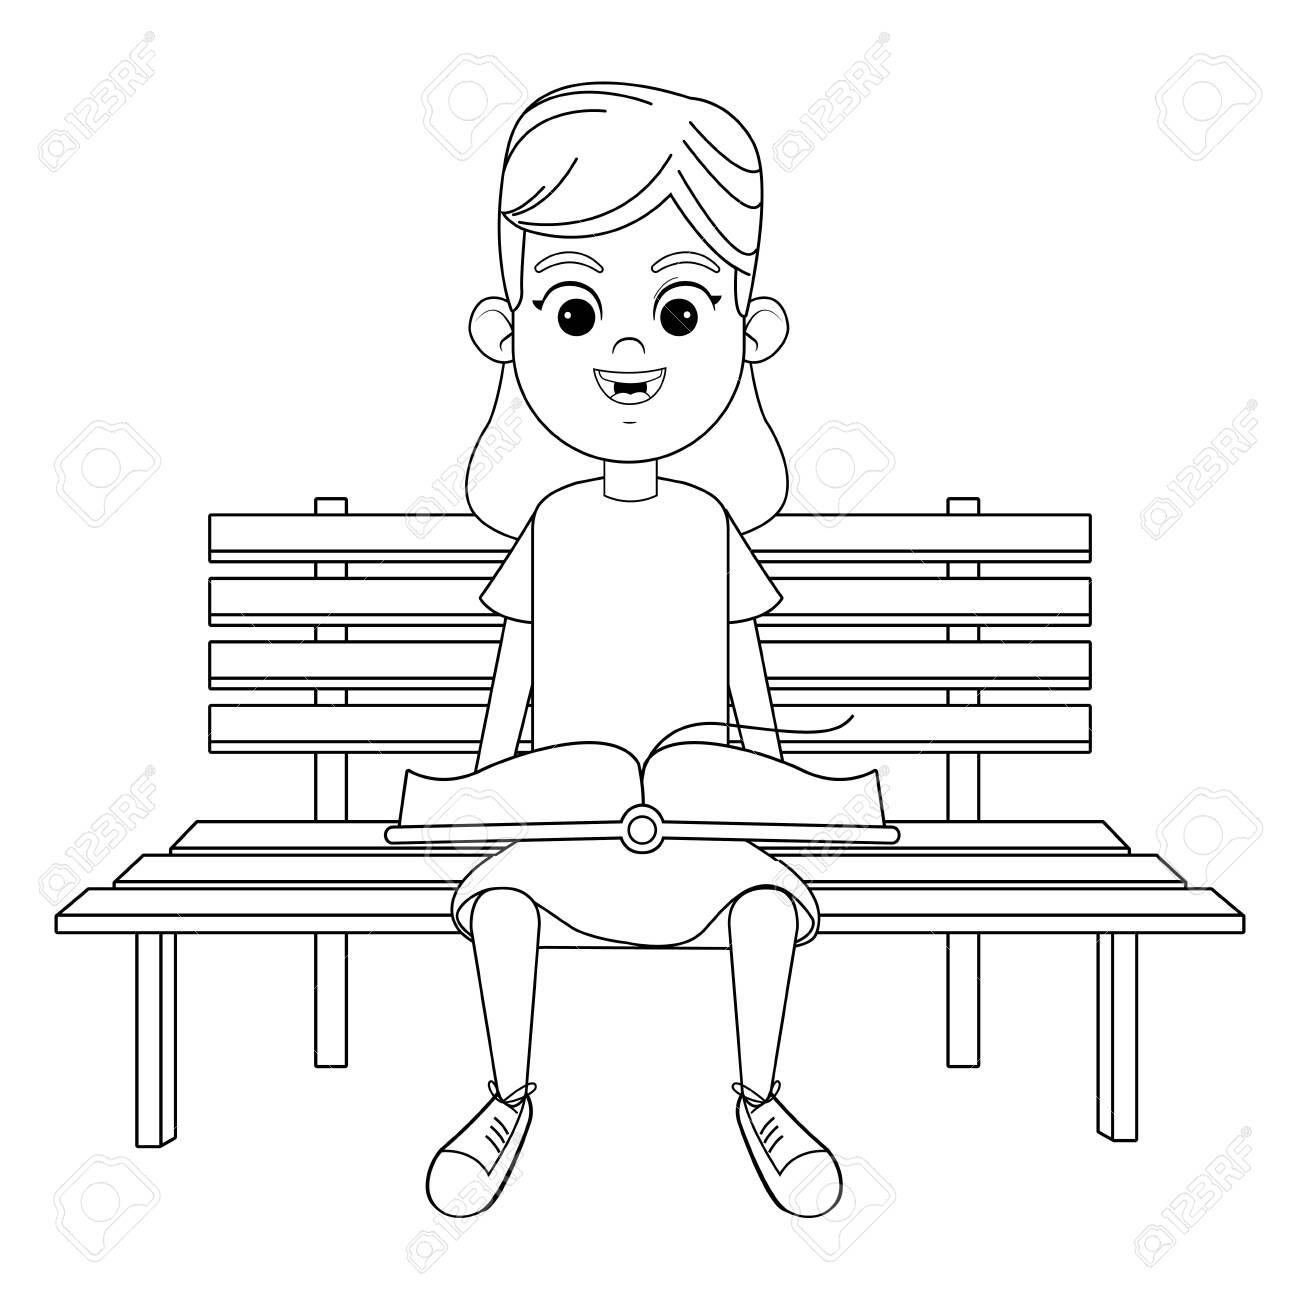 Phenomenal Young Girl Sitting On A Wooden Bench Reading A Book Avatar Cartoon Machost Co Dining Chair Design Ideas Machostcouk